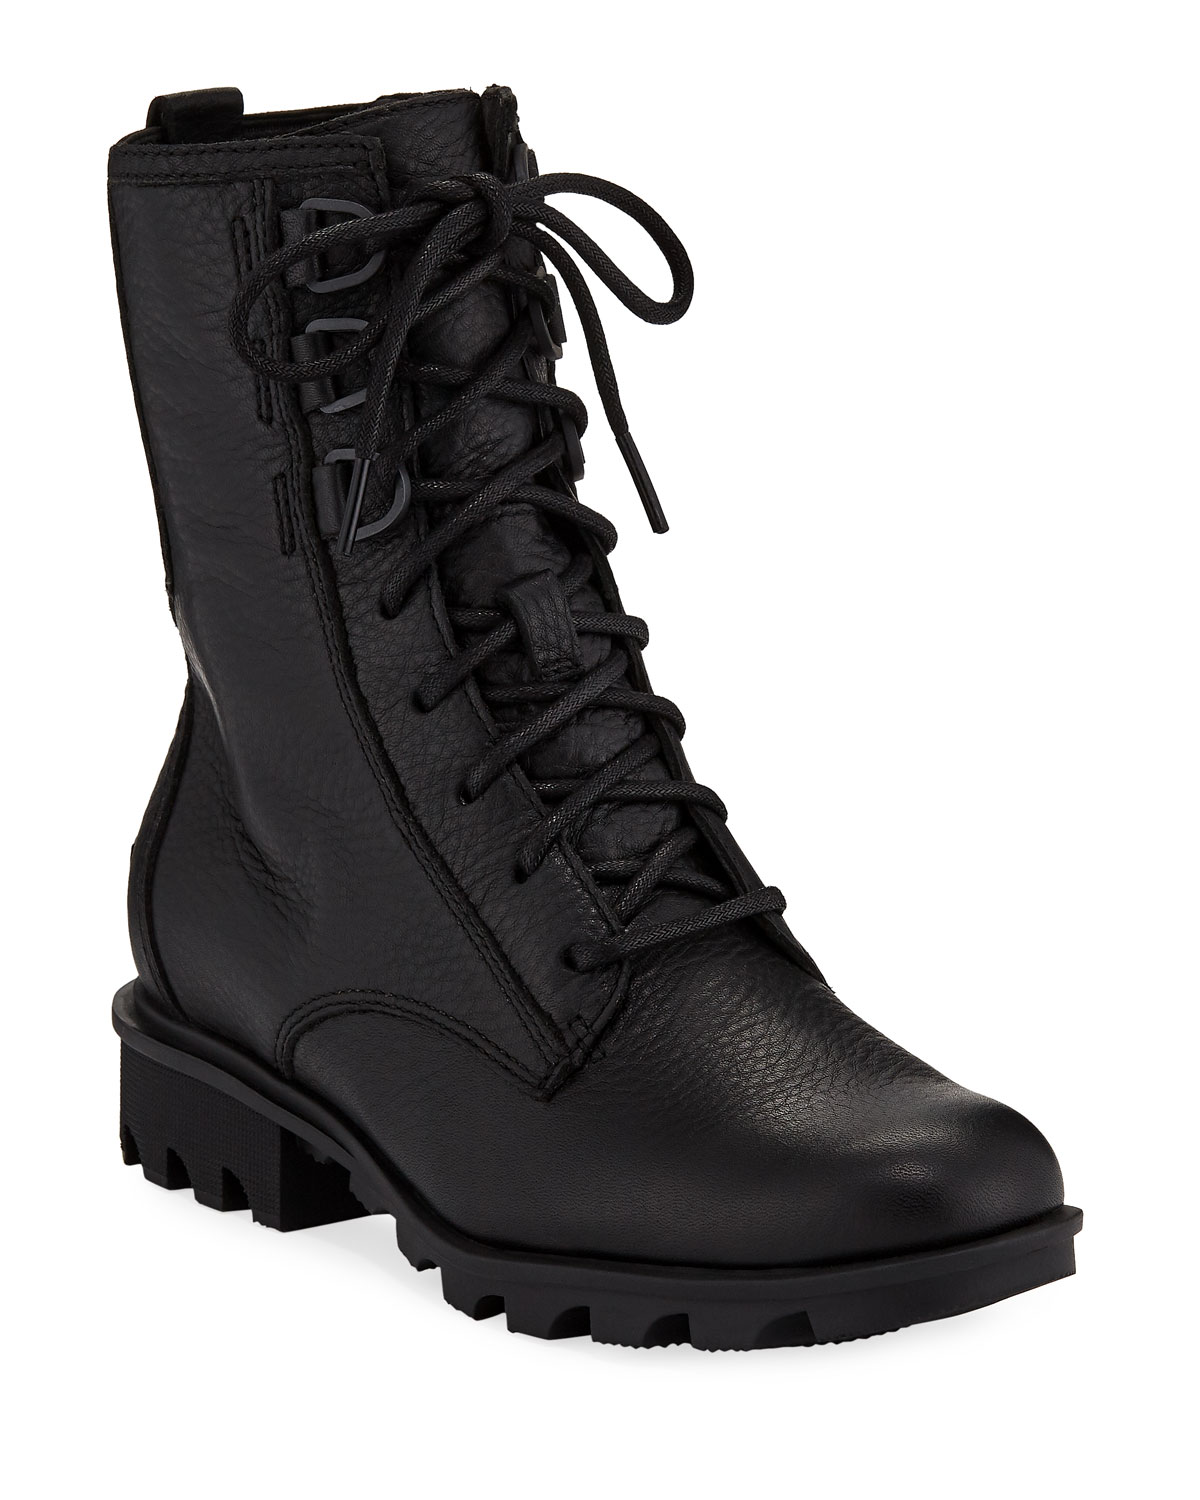 Sorel Phoenix Waterproof Leather Combat Boots Neiman Marcus